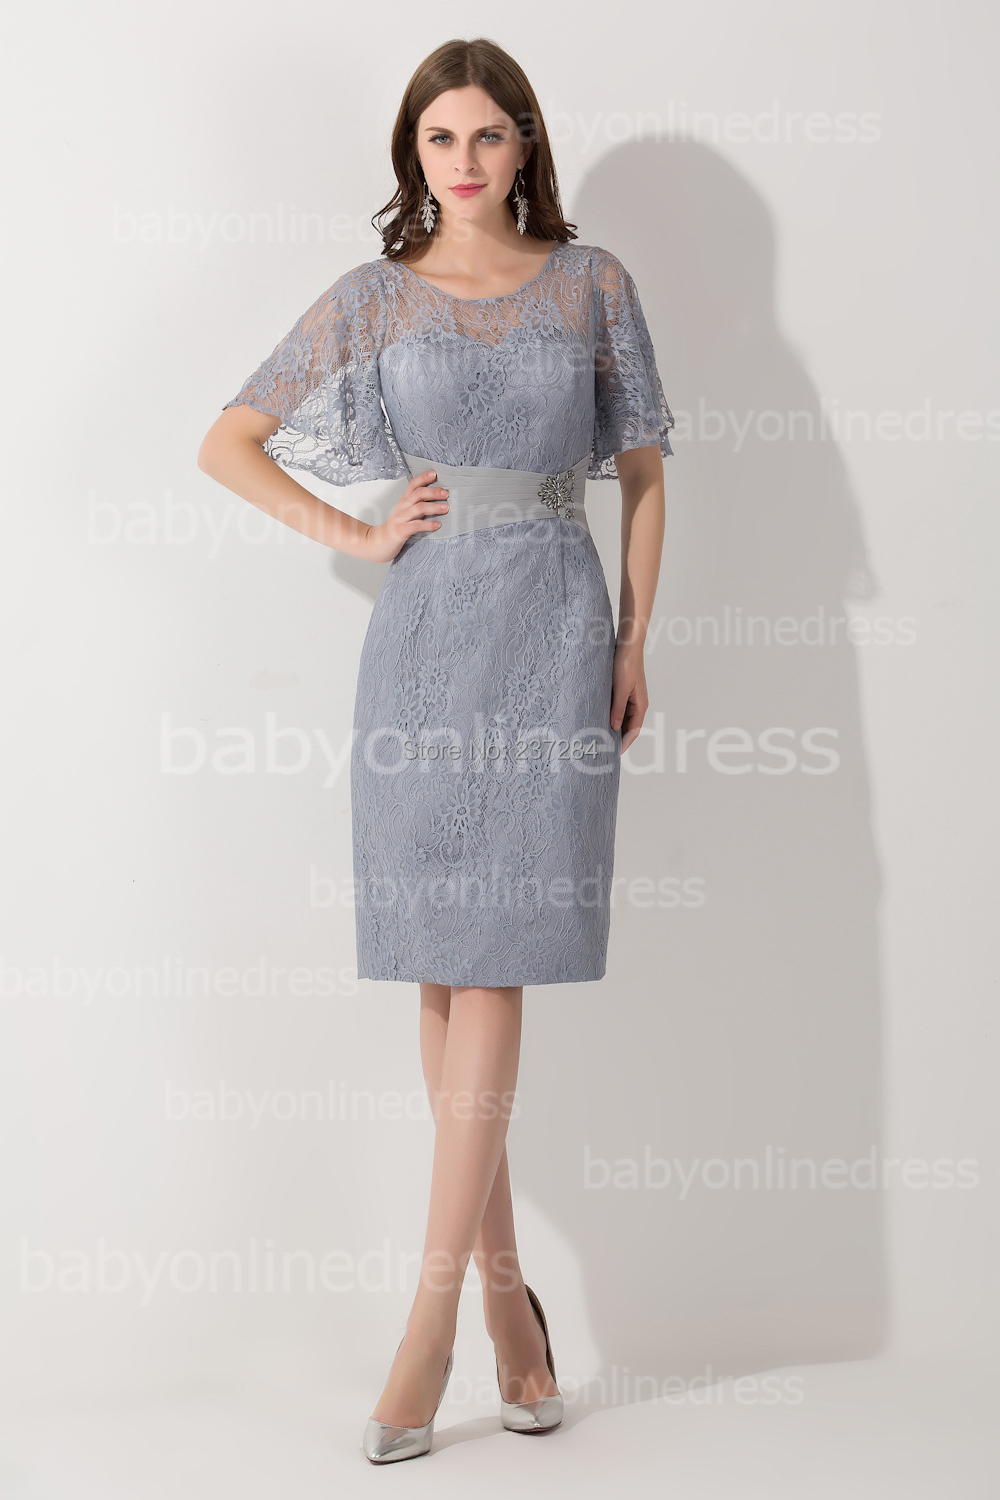 Mother Of The Bride Grey Dresses Photo Album - Kcraft